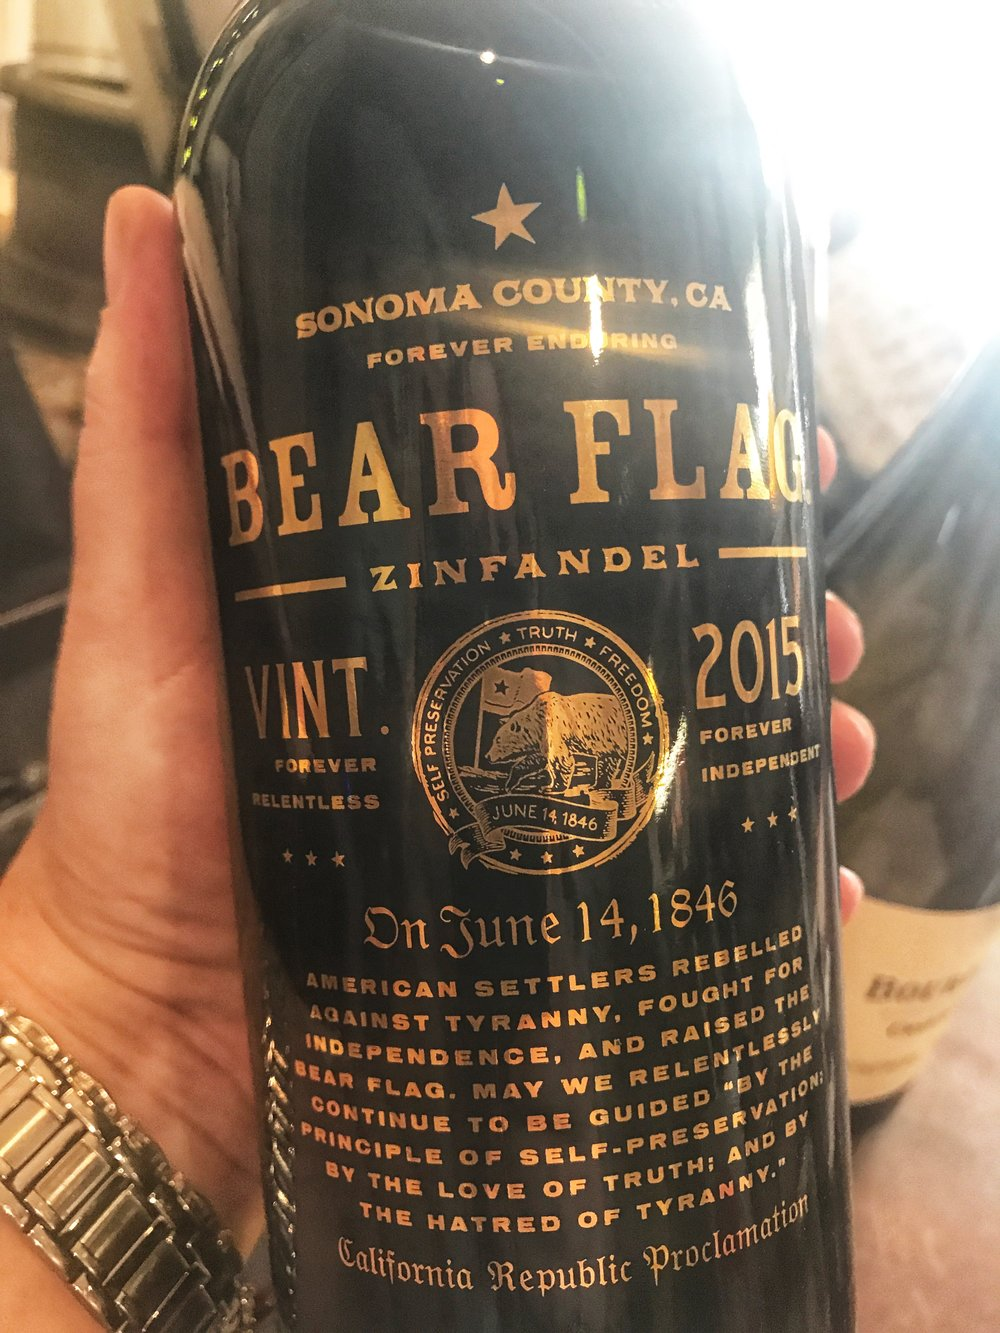 2015 Bear Flag Zinfandel, Sonoma: 92 points Wine Spectator $21.99. Based on a California Republic Proclamation from 1846, this wine offers a nod to Sonoma's place in history. It was the location for the Bear Flag Revolt, a fight for Californian independence. We see this as a great representation from one of the state's best growing regions for this variety. With 78% Zinfandel, 9% Petite Sirah, 6% Teroldego, 5% Malbec, and 2% other varieties, the majority of the fruit hails from Dry Creek Valley. With classic Zin aromas of peppered nettle and blueberry tart, the palate is rich, dense, and forward. This plucky Zin shows brightness, with a rustic, textured mouthfeel.